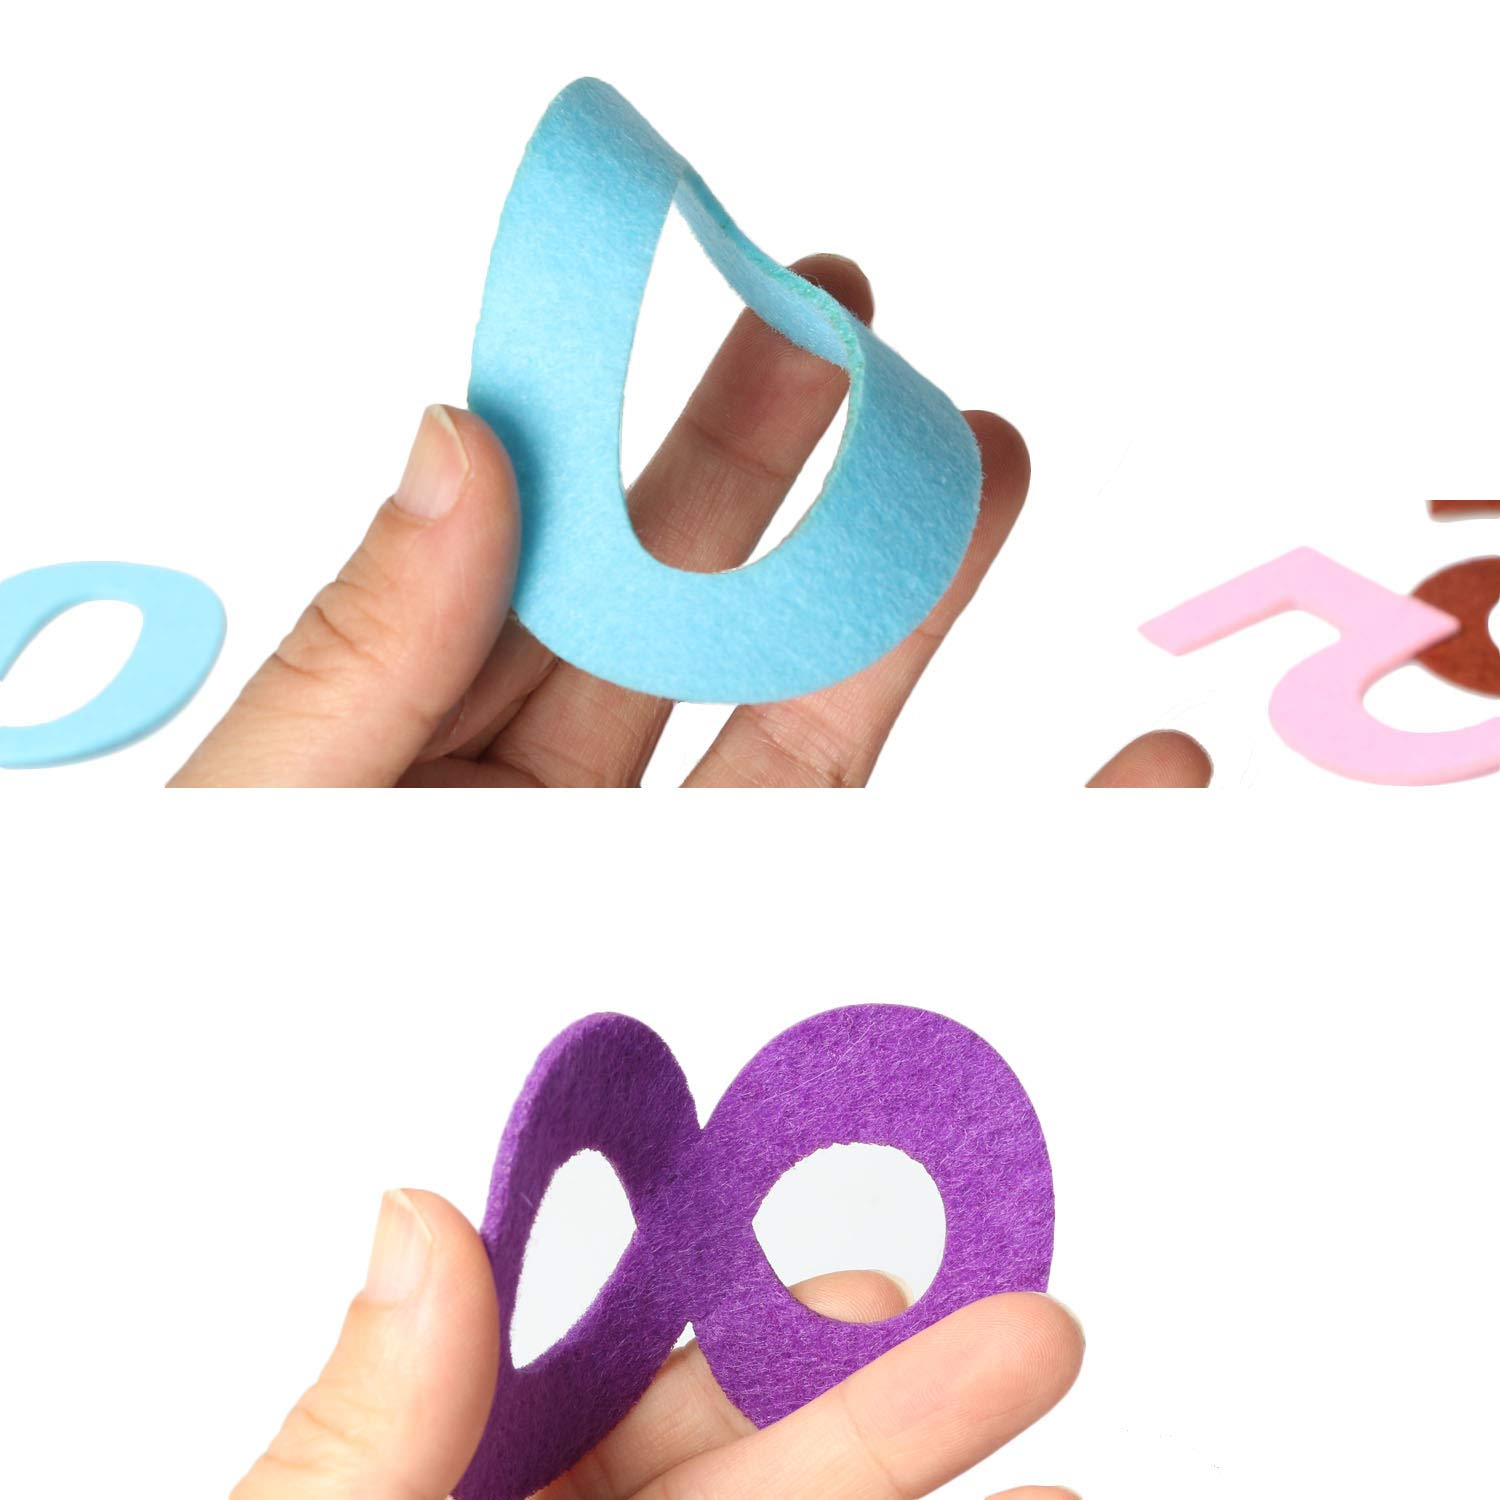 5 Sets Assorted Bright Colors Party Room Banners Decoration School Projects RERIVER Felt Numbers 3.2-Inch Tall 50Pcs 0-9